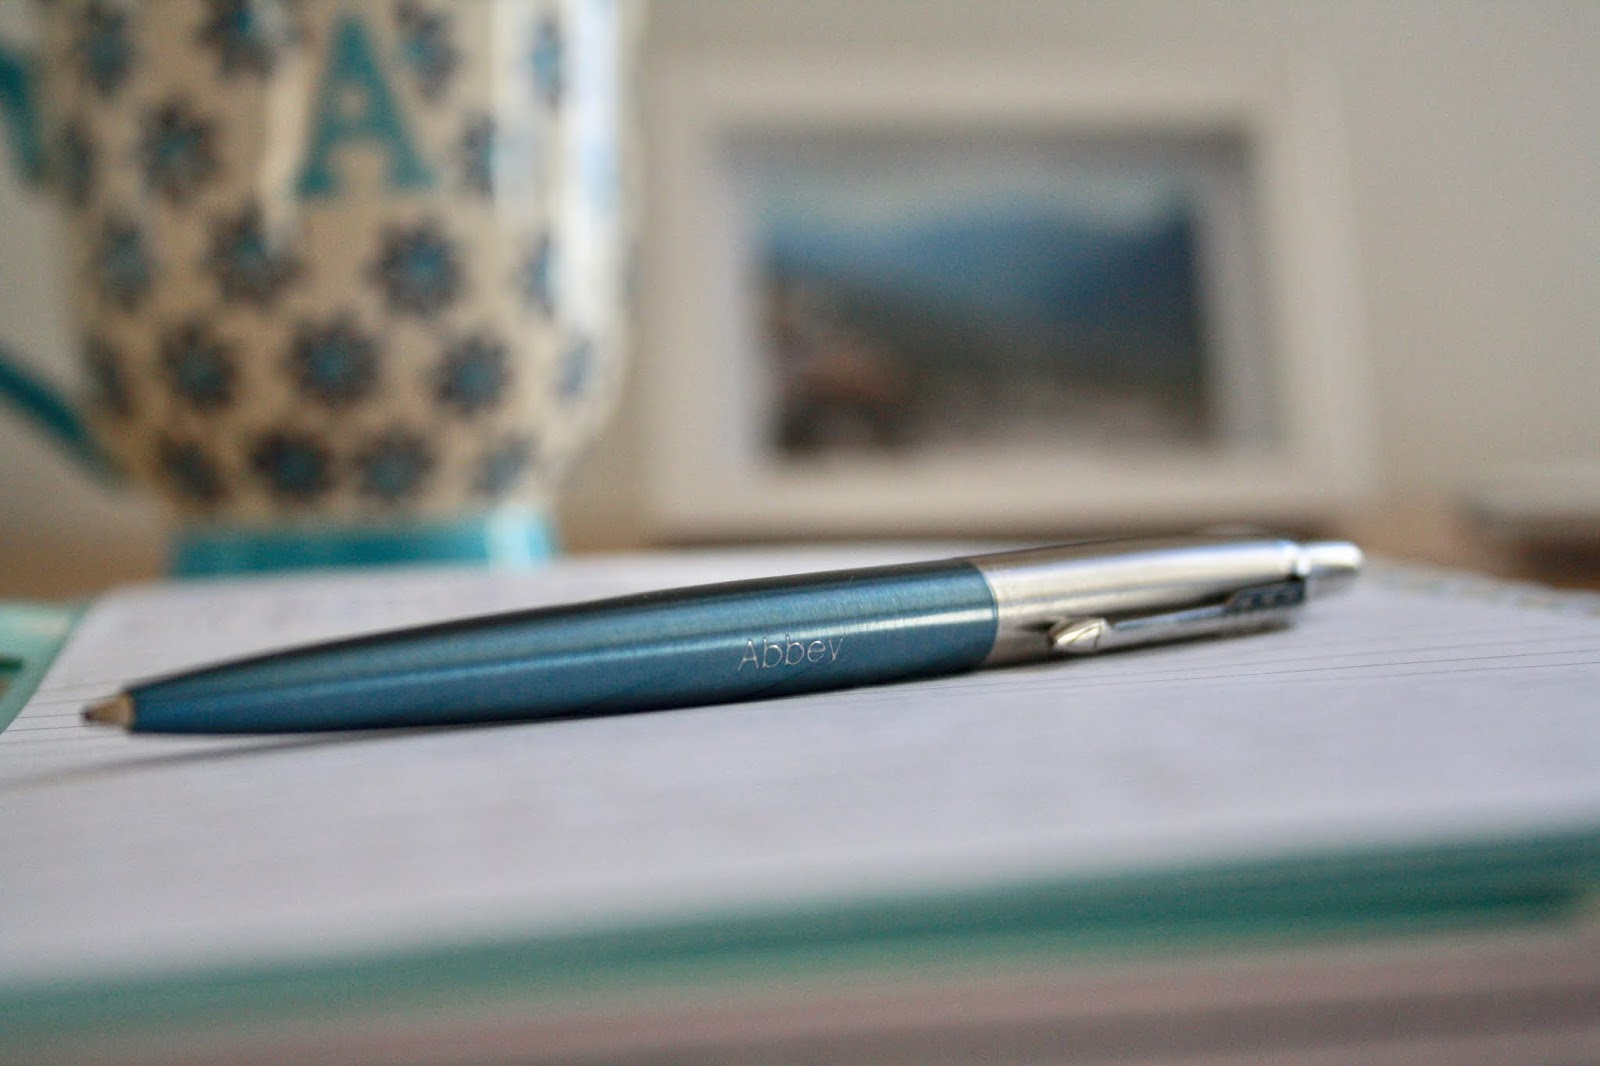 close up of pen resting on open notebook with mug and lamp in background